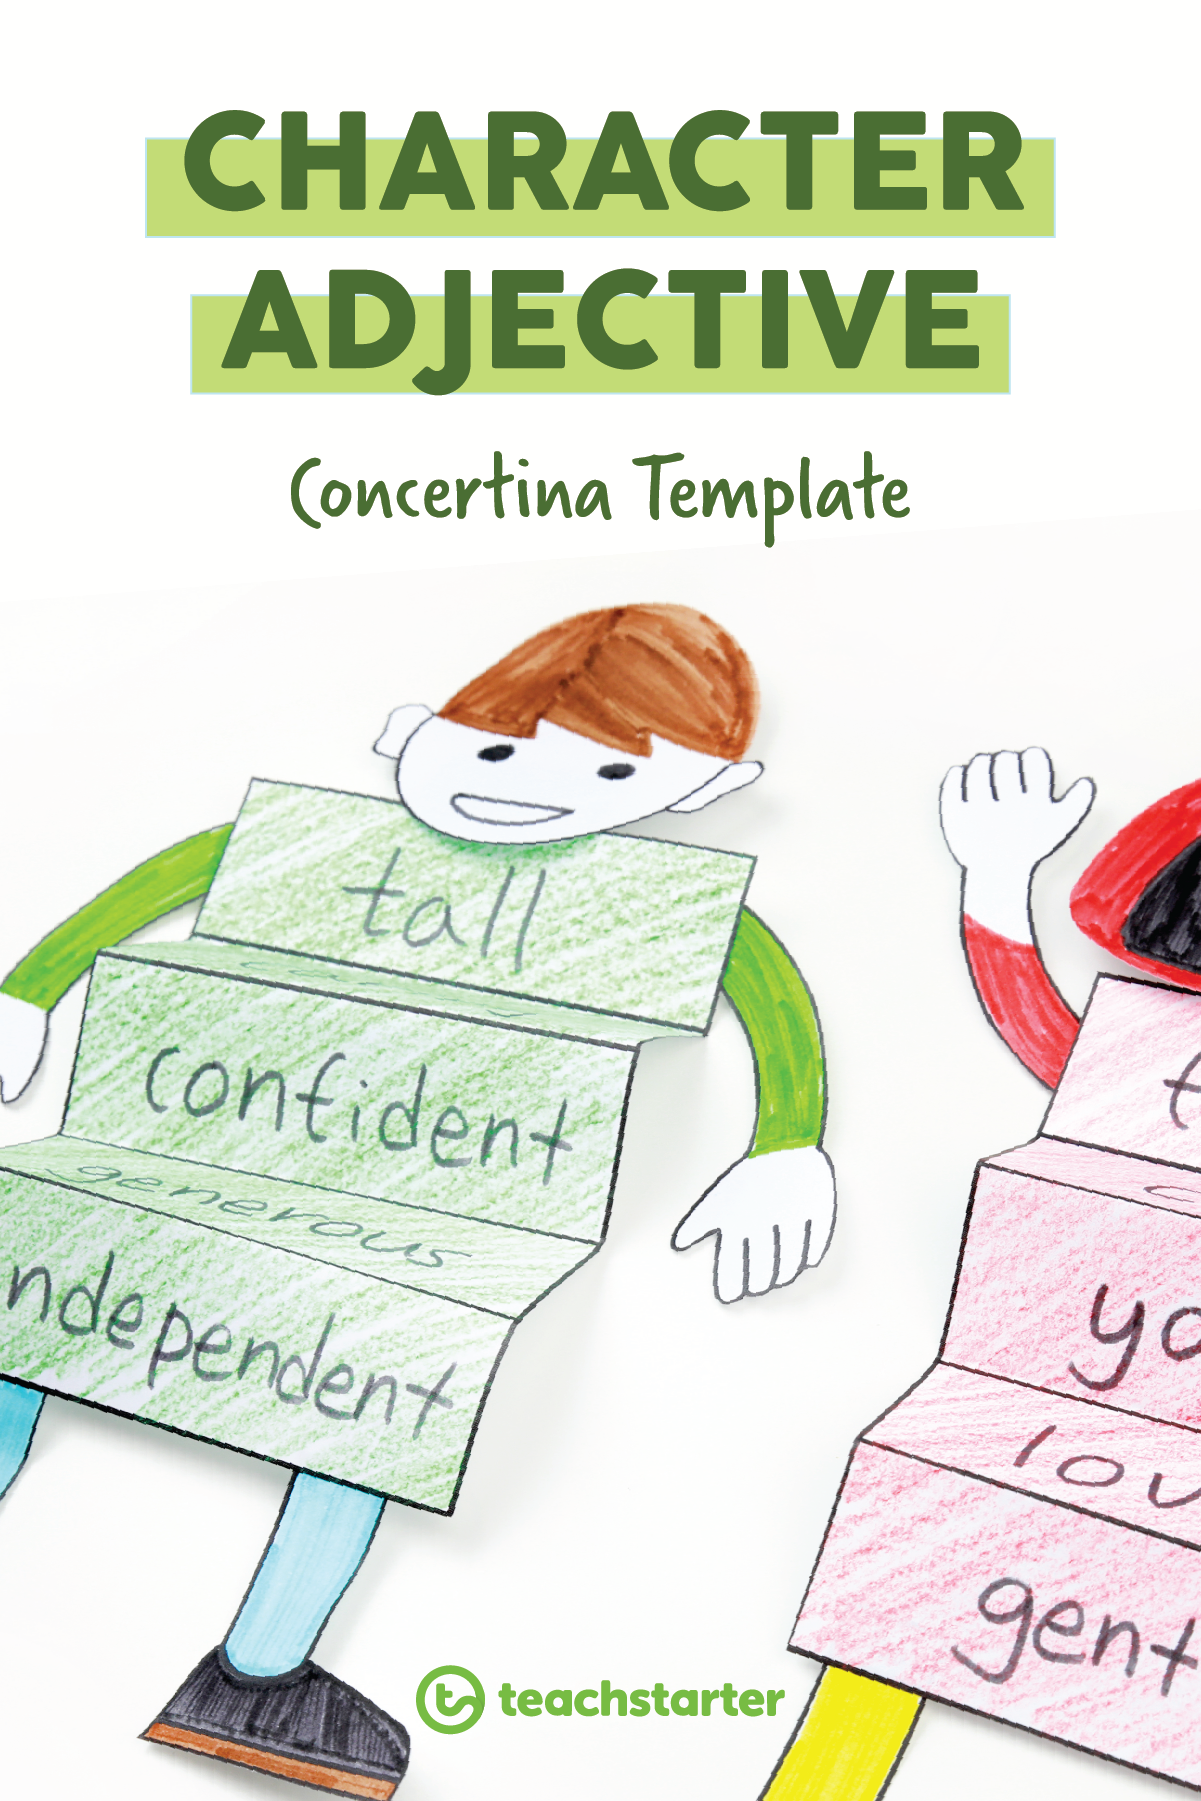 Character Adjective Accordion Template